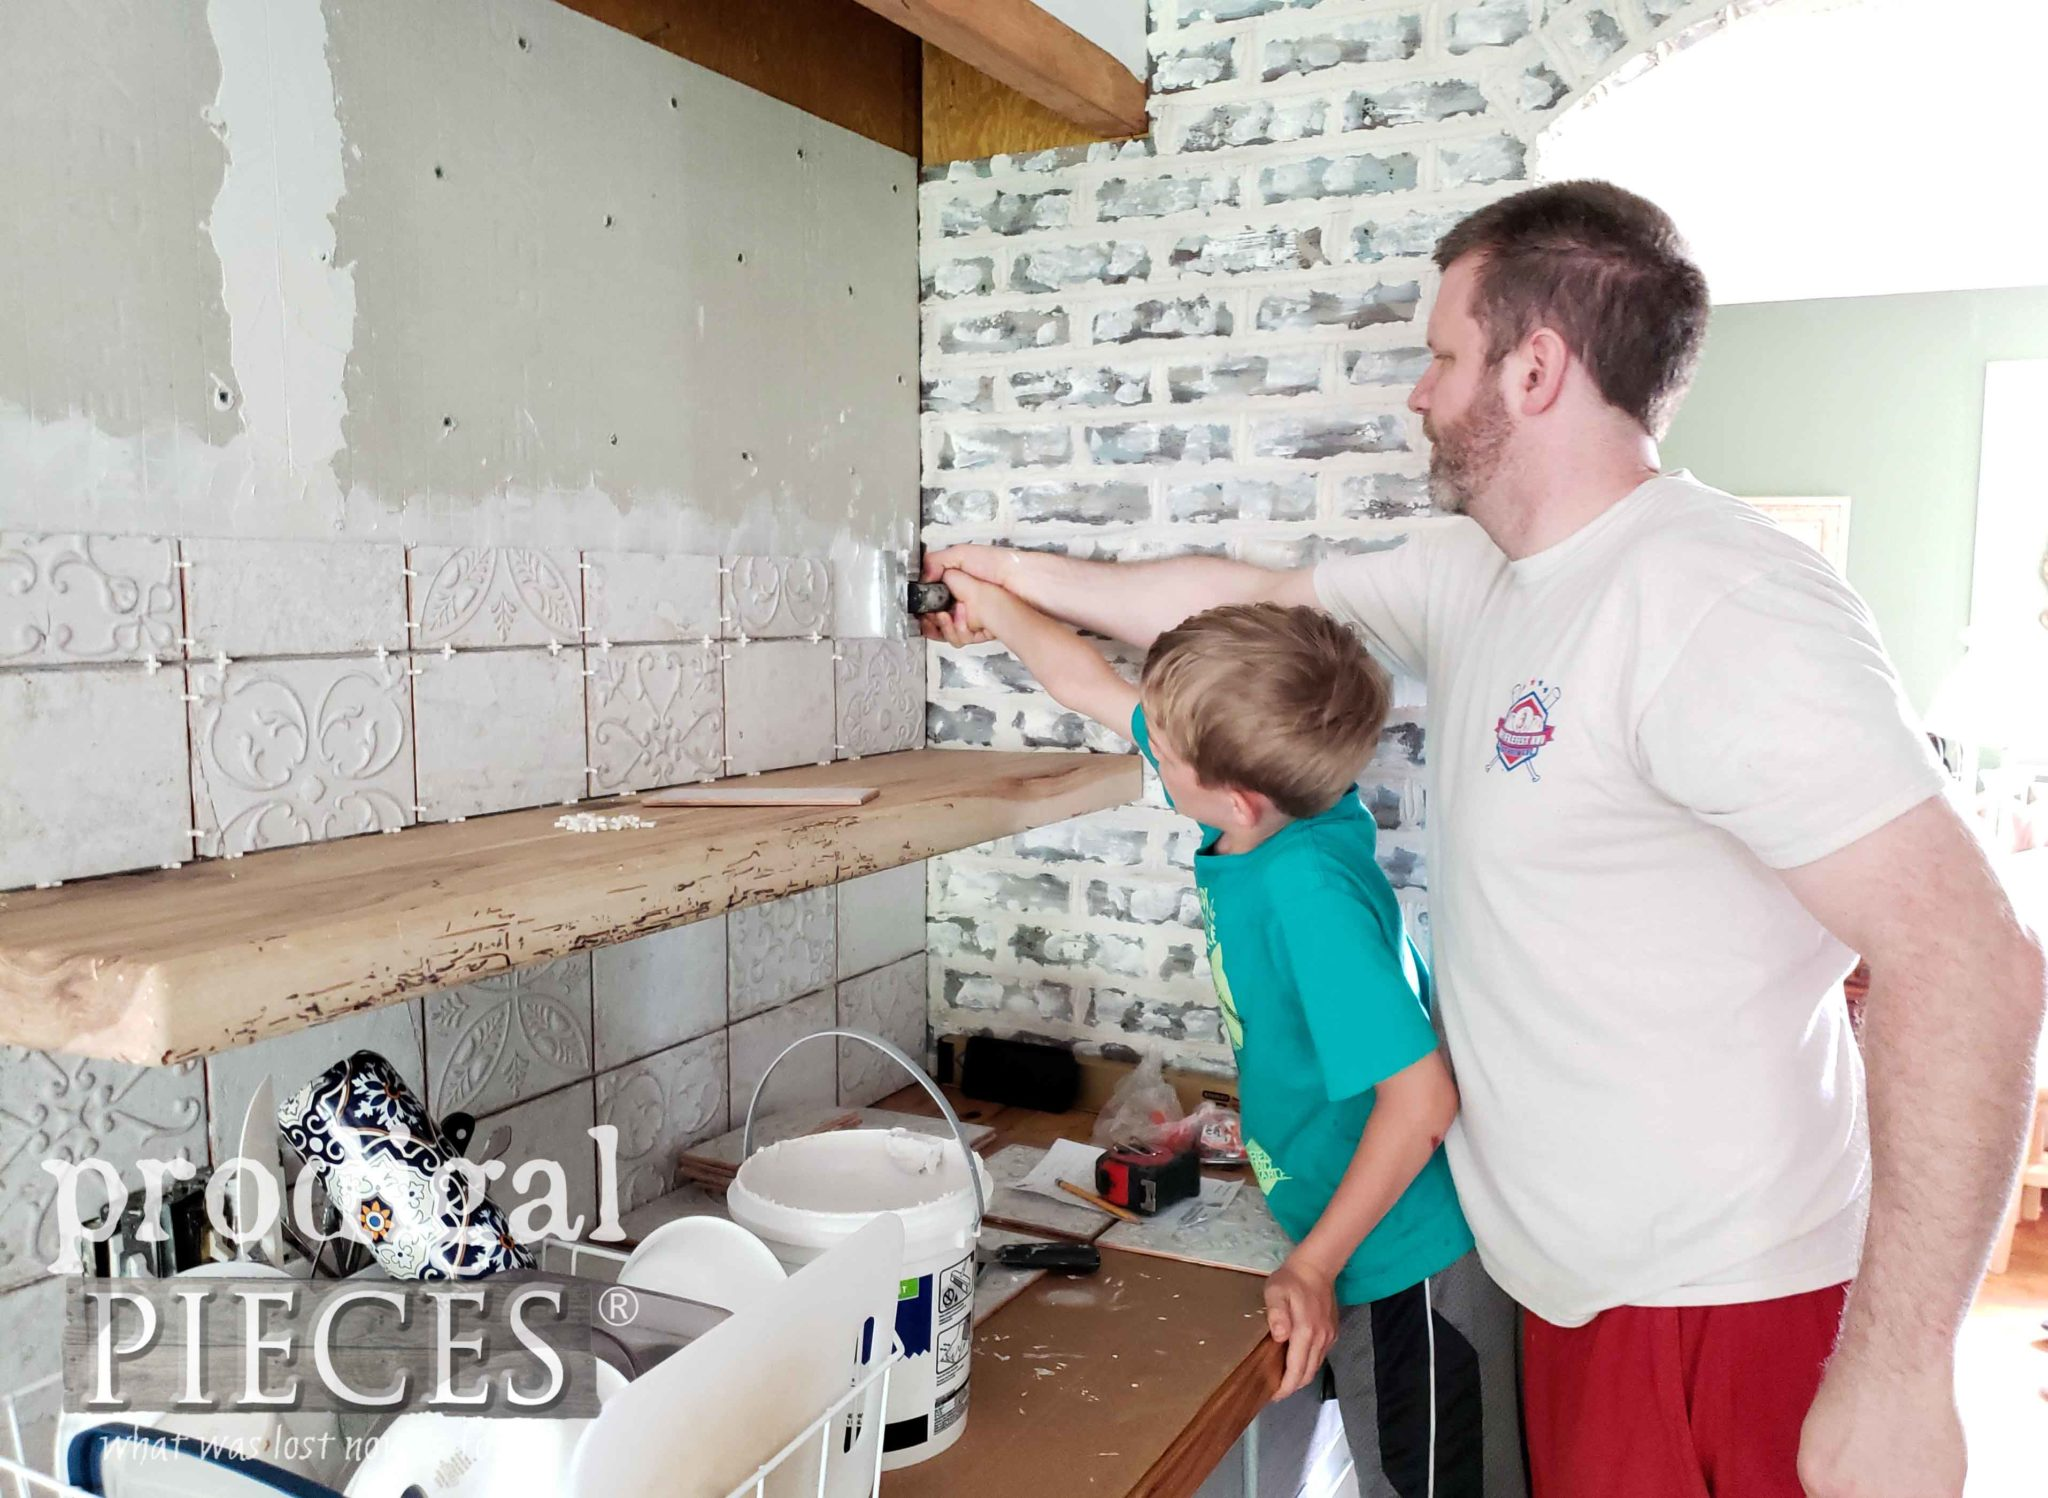 Dad and Son Hanging Kitchen Backsplash Tile | prodigalpieces.com